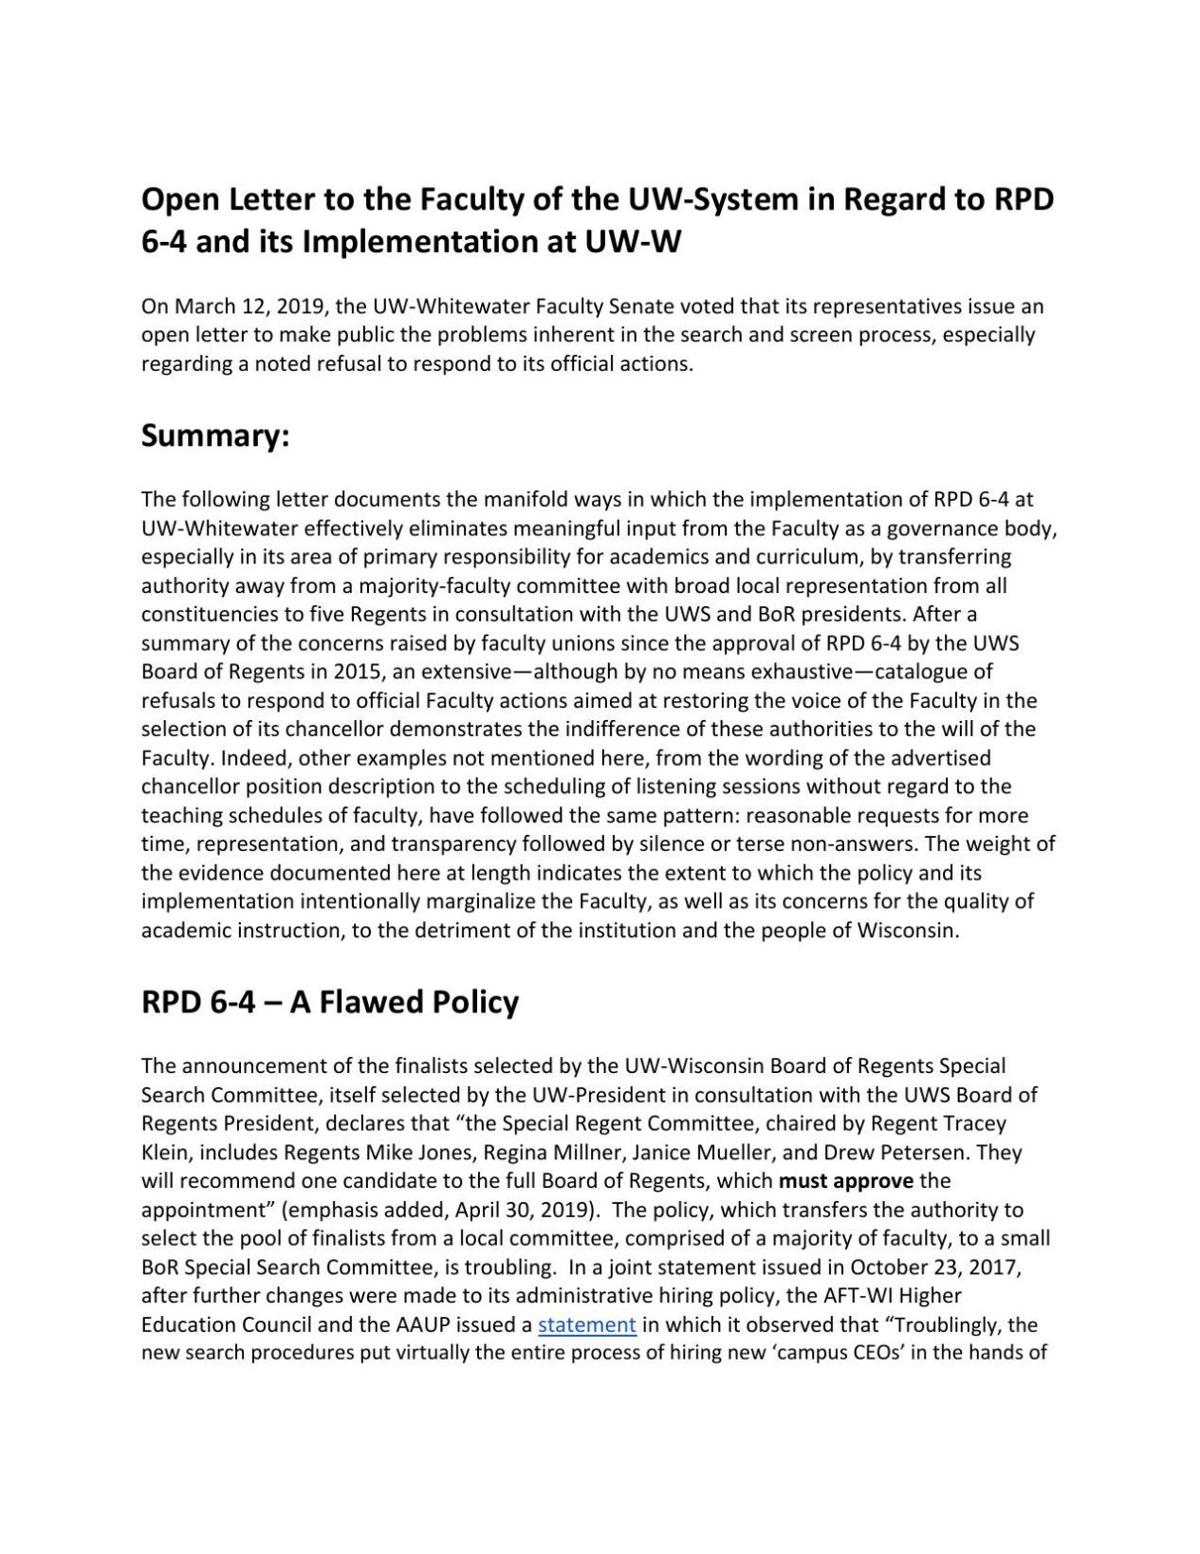 OPEN LETTER RE RPD 6-4 TO UWS FACULTY.pdf